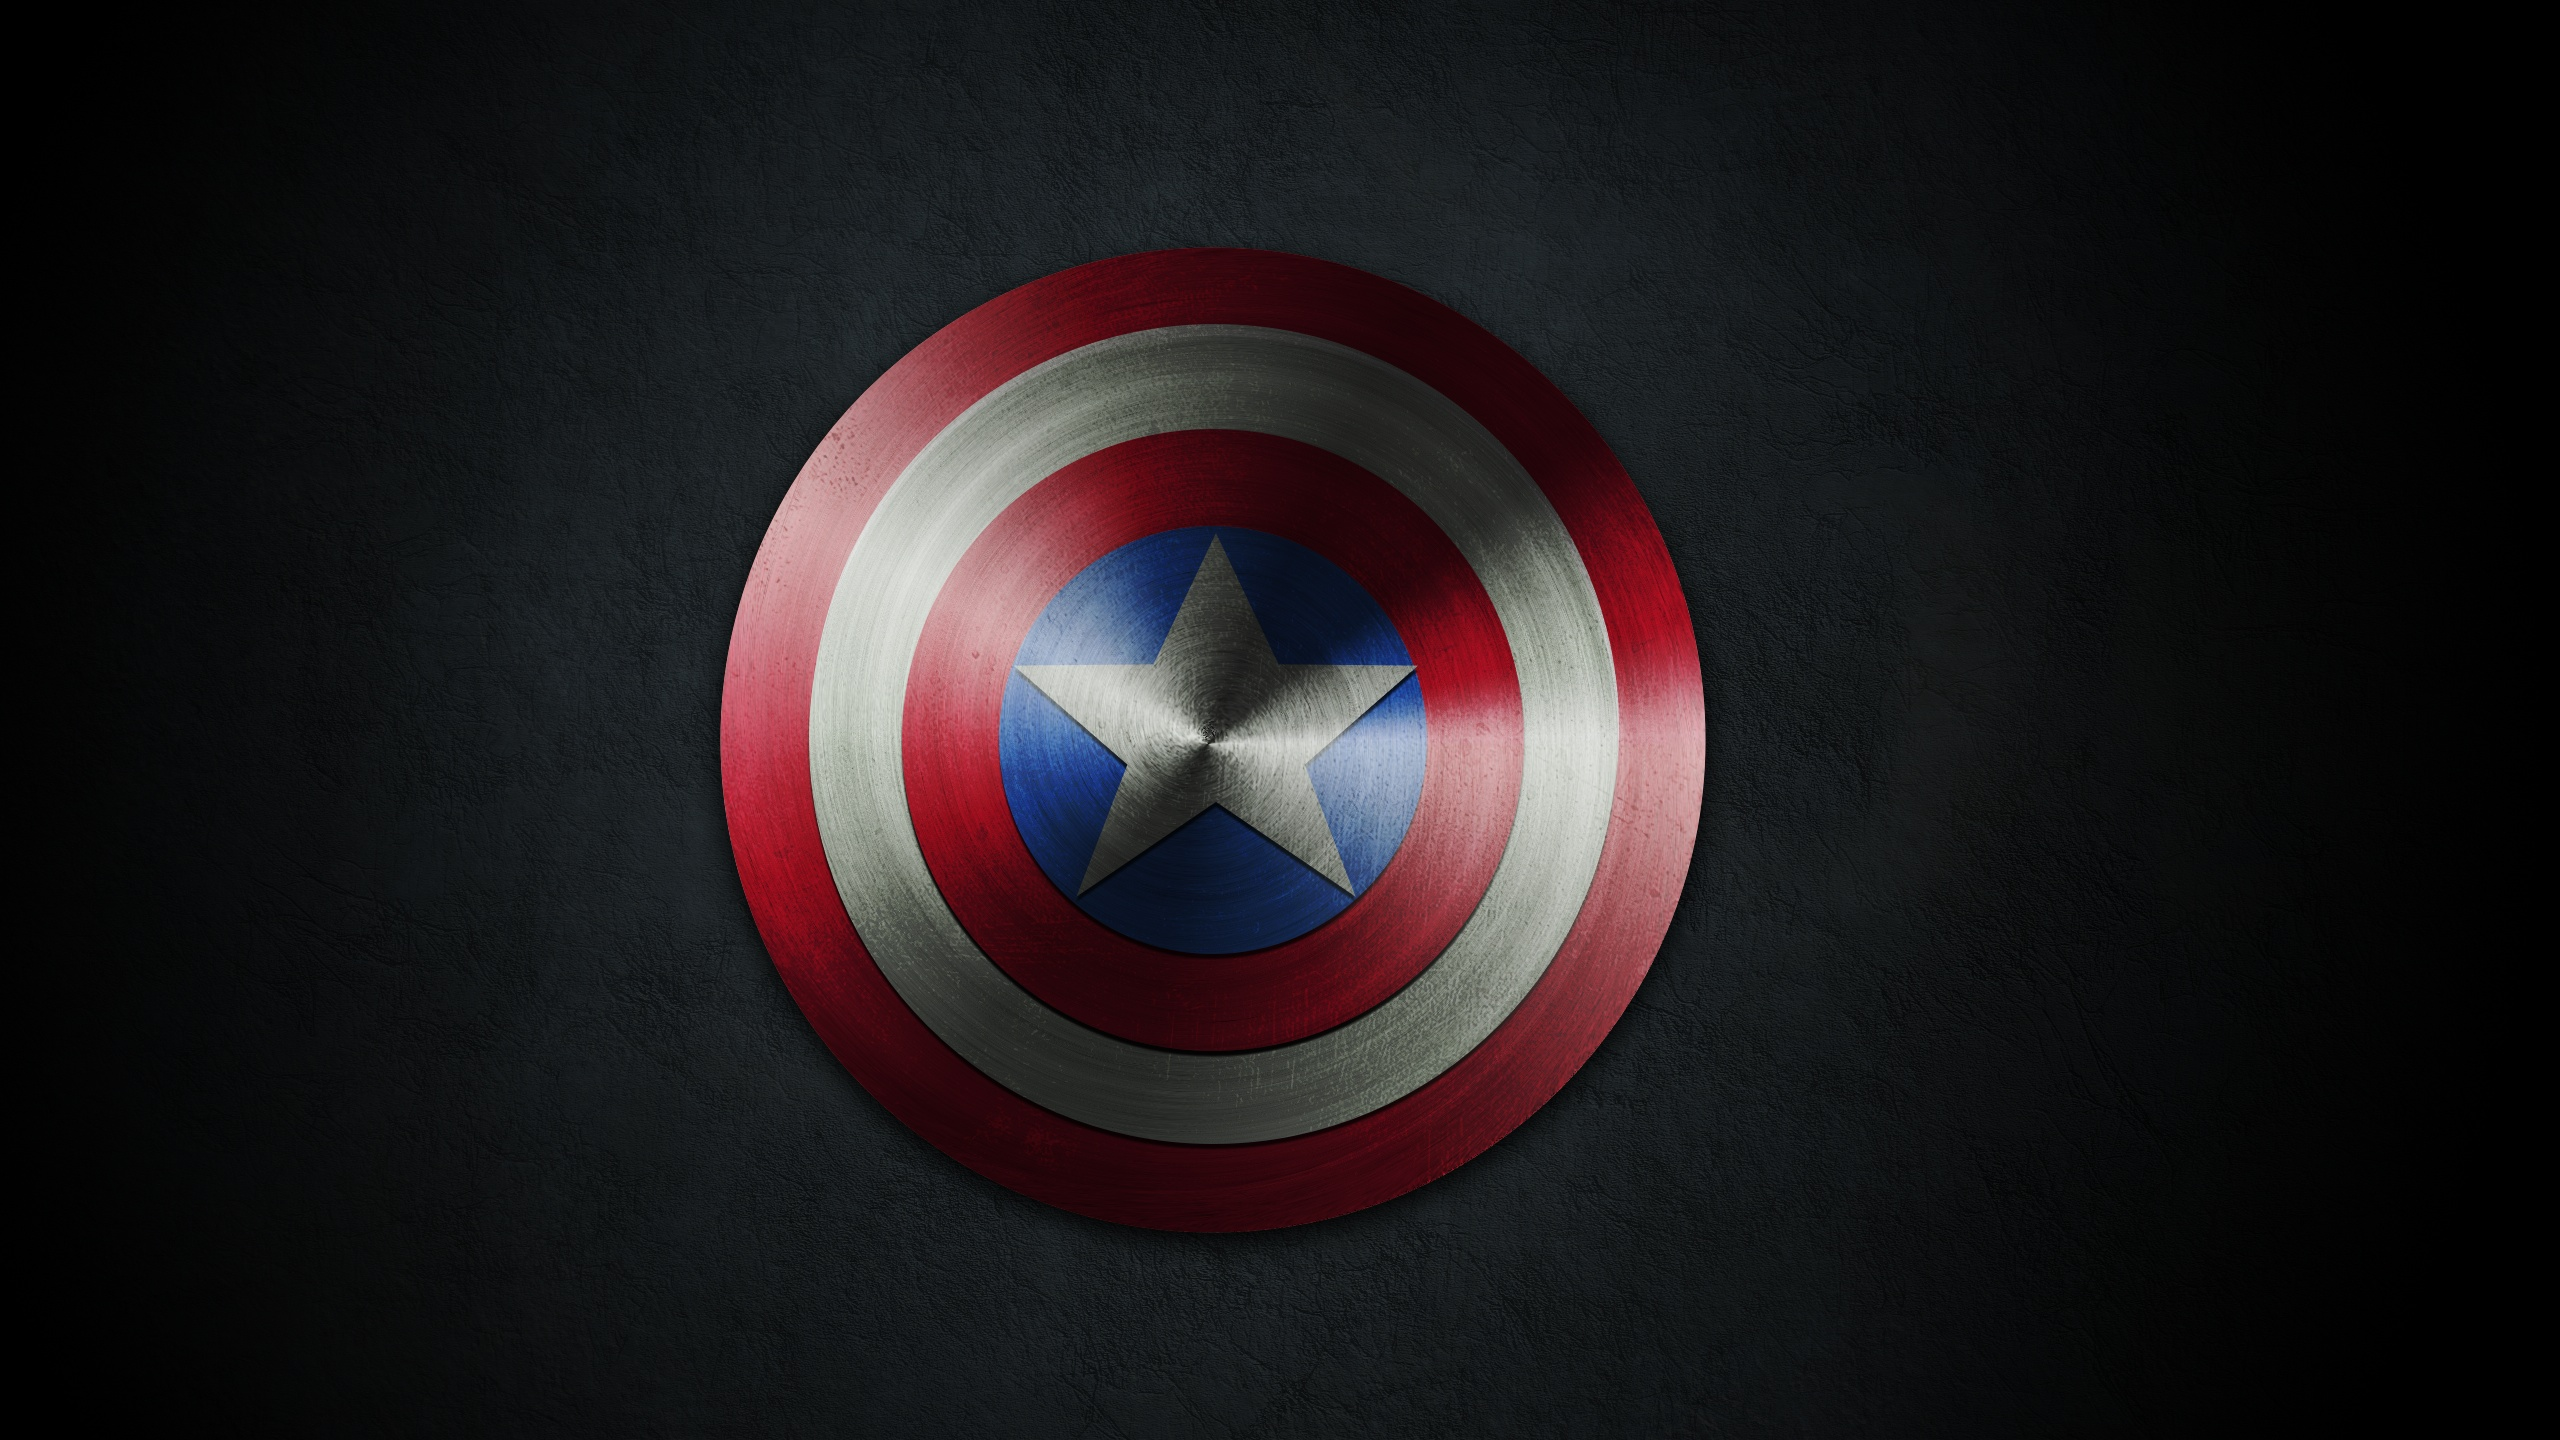 Showing Gallery For Captain America Shield Wallpaper 1280x1024 2560x1440